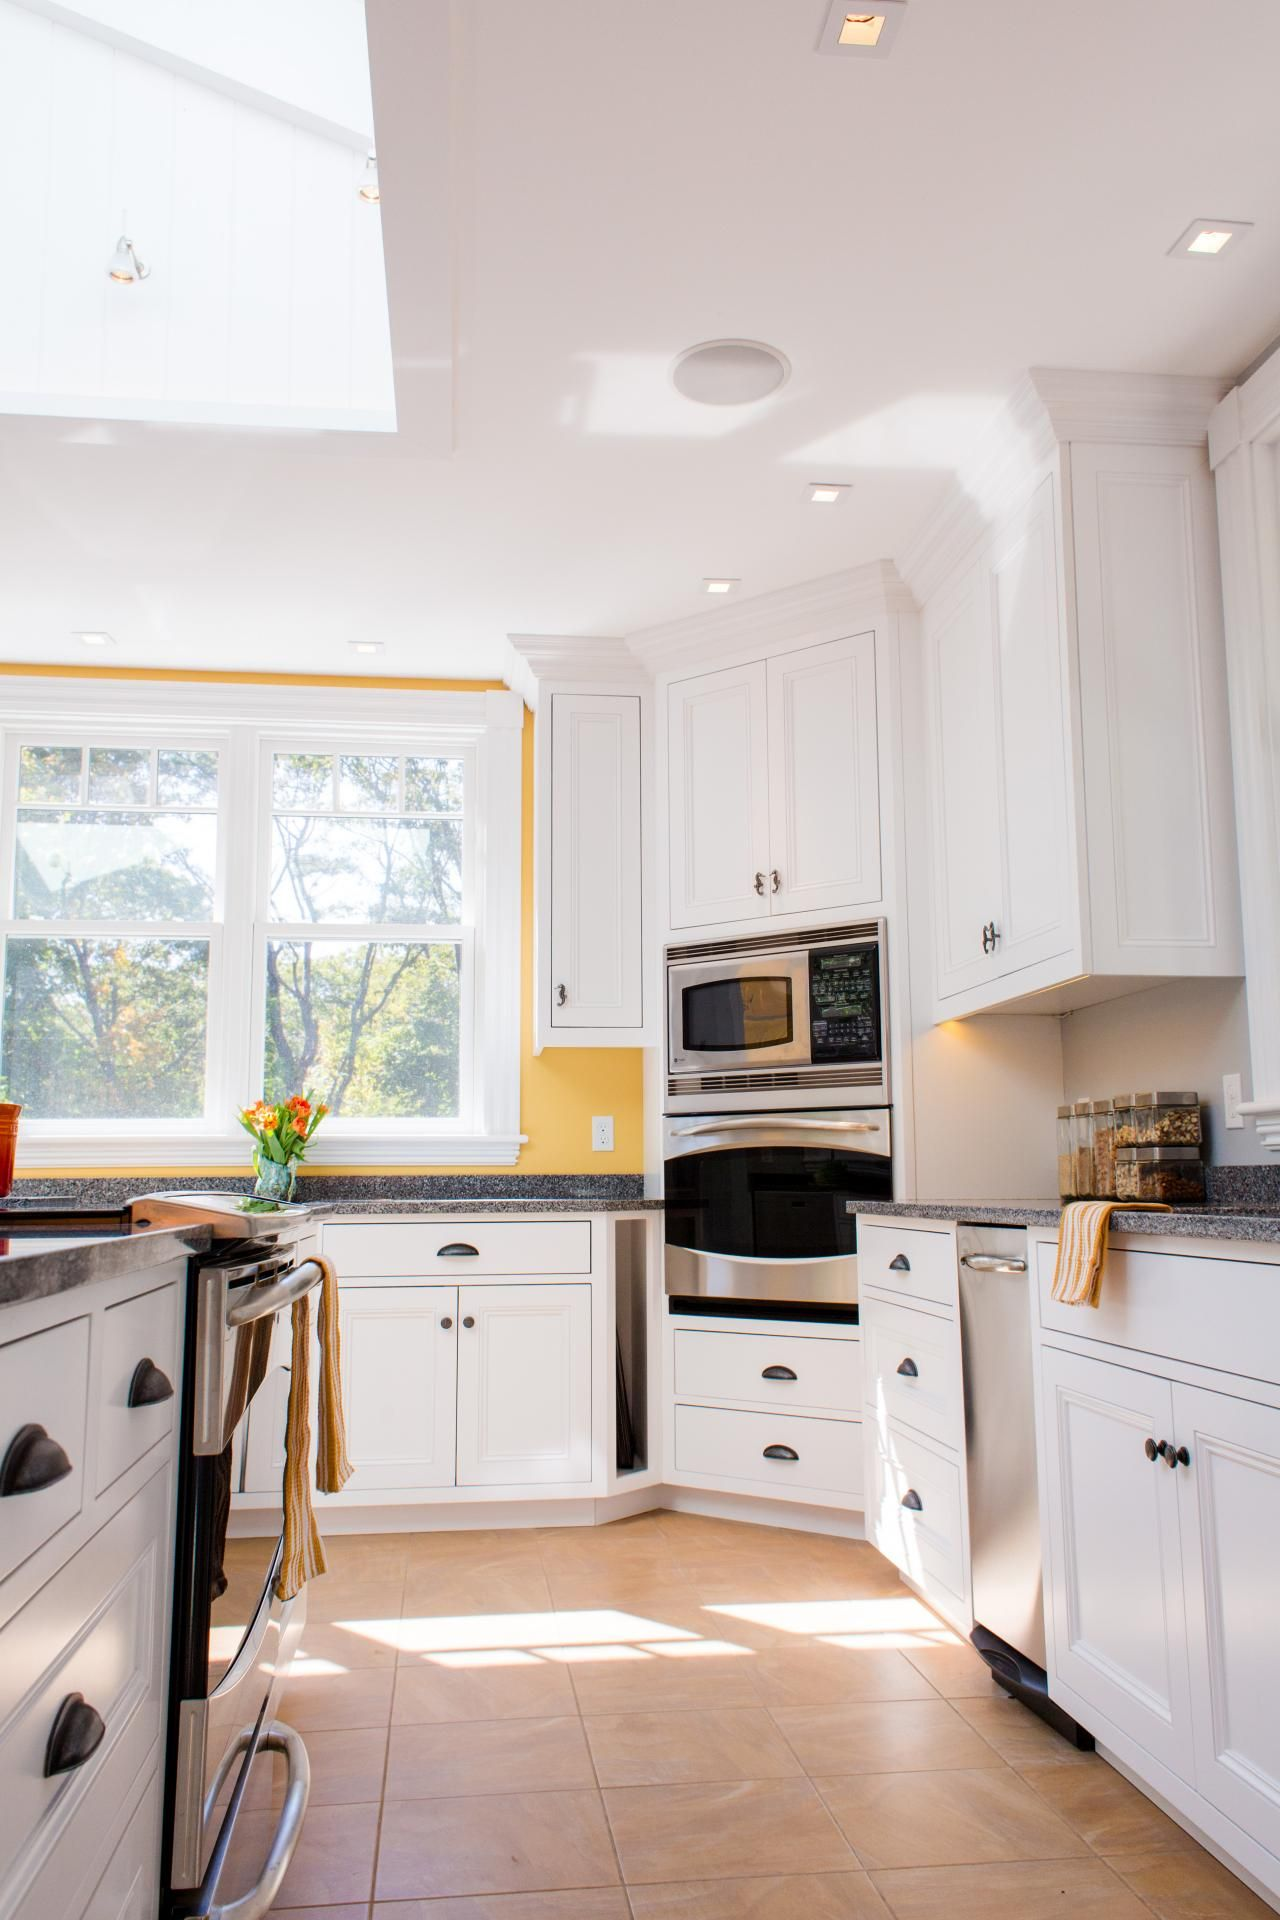 Fresh white cabinets pair beautifully with the bright yellow walls